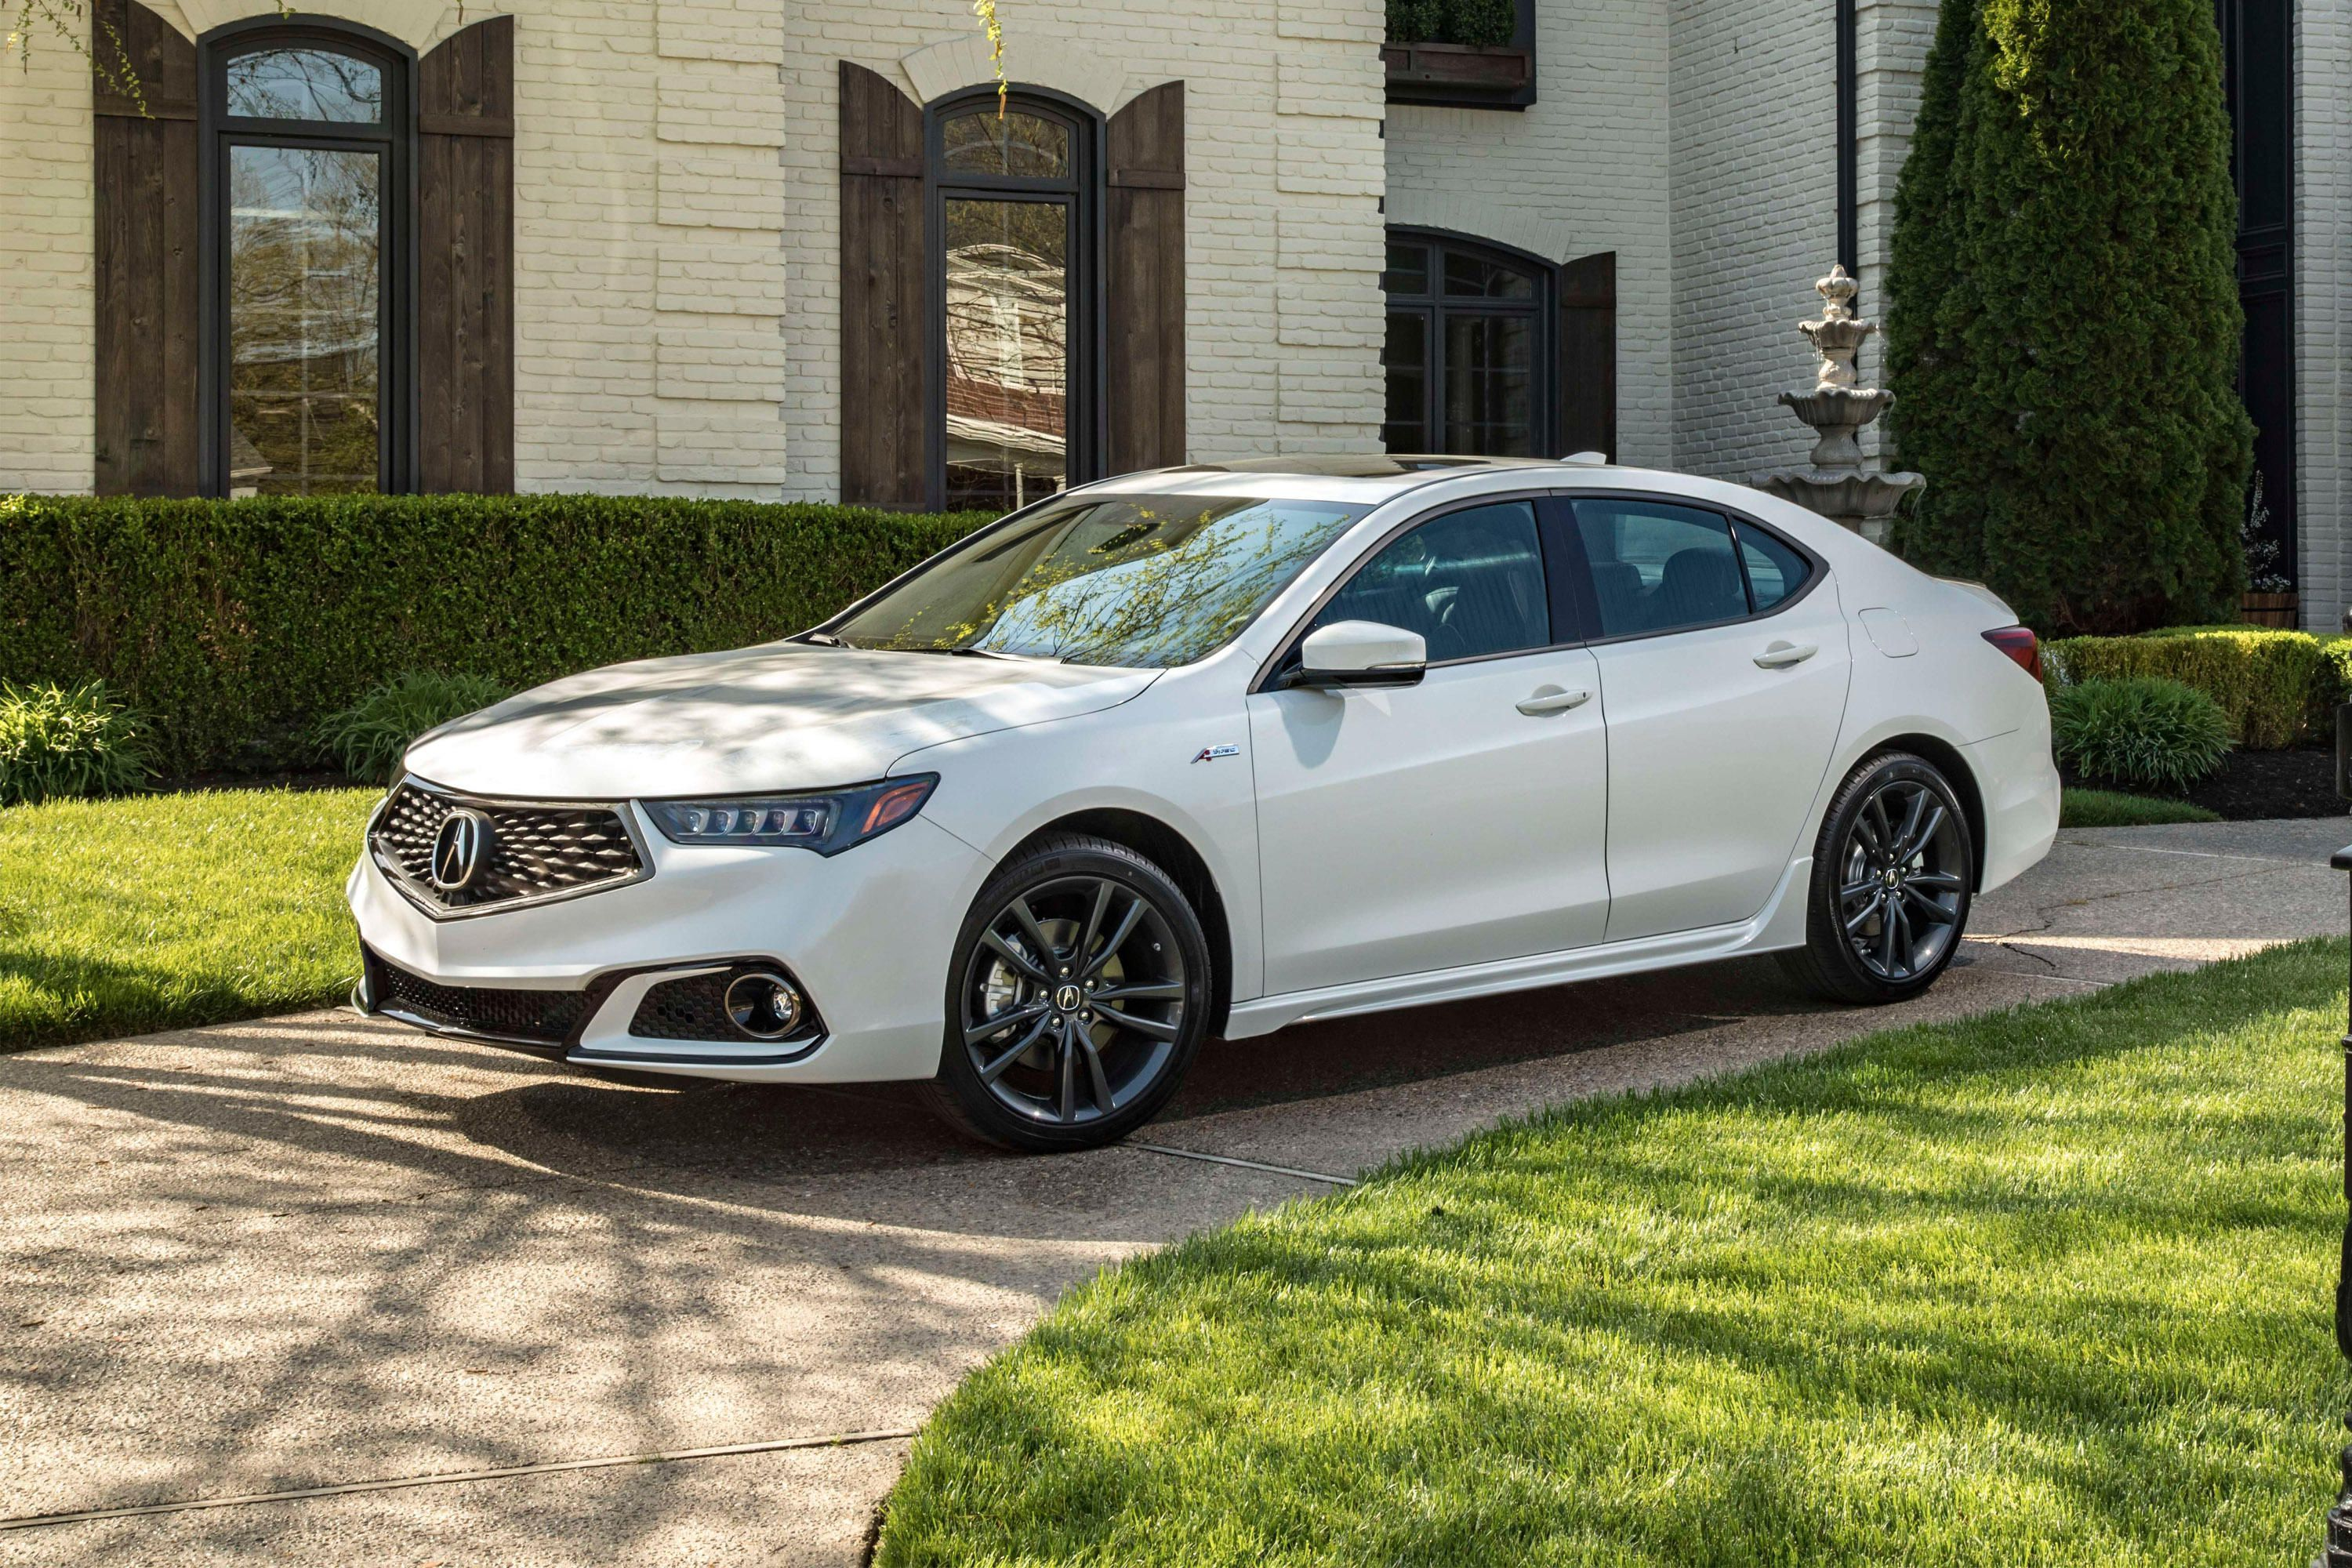 2019 Acura Tlx Type S | Release Car 2019 | Acura tlx ...